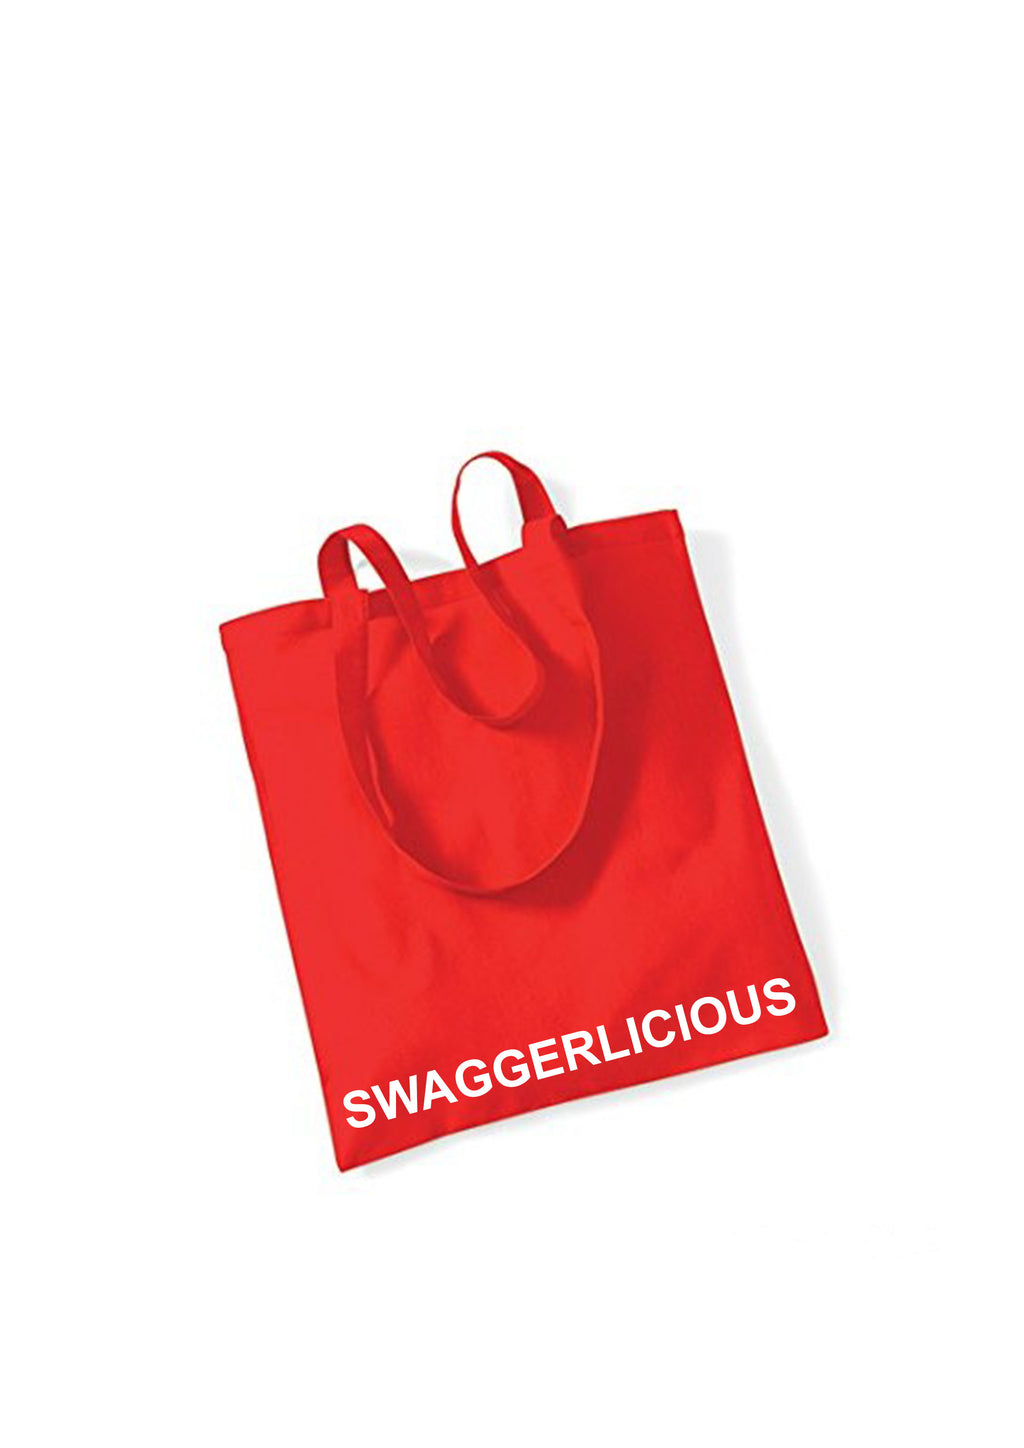 Swaggerlicious Bright Red Tote Bag - swaggerlicious-clothing.com